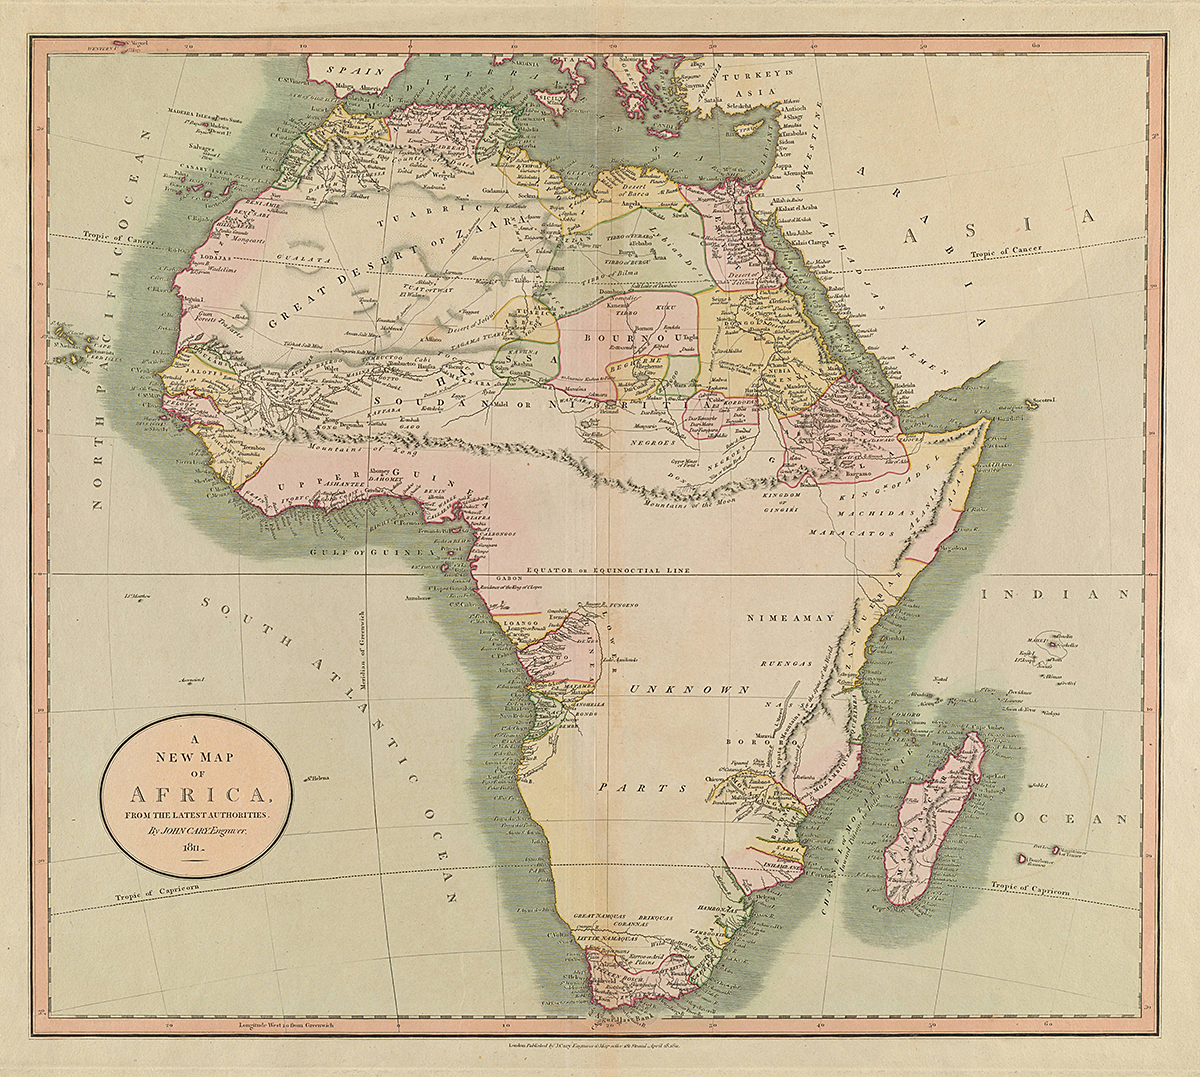 A New Map of Africa, the Latest Authorities, 1811. Engraving by John Cary. Originally published in Cary's New Universal Atlas, London, 1808. Courtesy of the Thomas Bassett Personal Collection, http://imagesearchnew.library.illinois.edu/cdm/singleitem/collection/africanmaps/id/2018/rec/1.